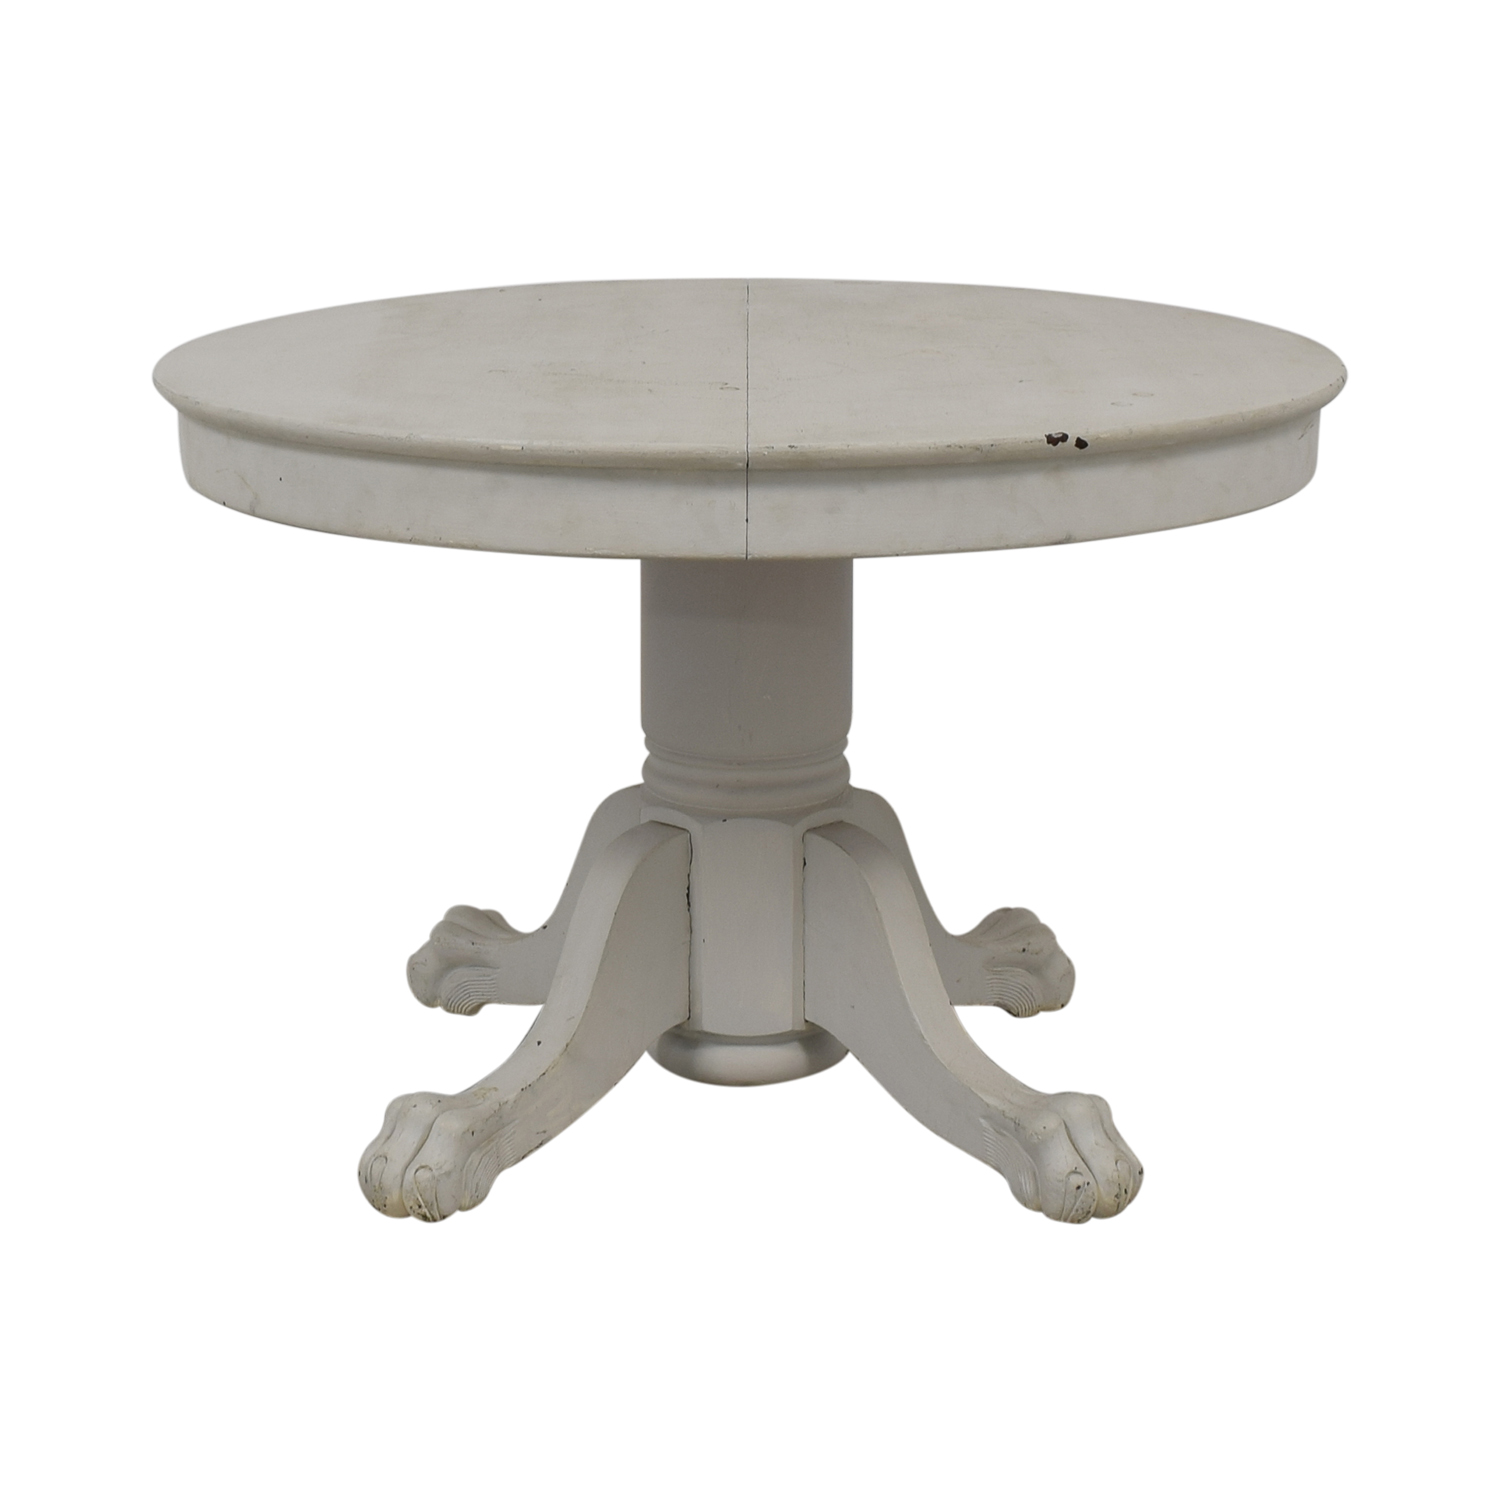 American Country Distressed Round White Oak Table discount